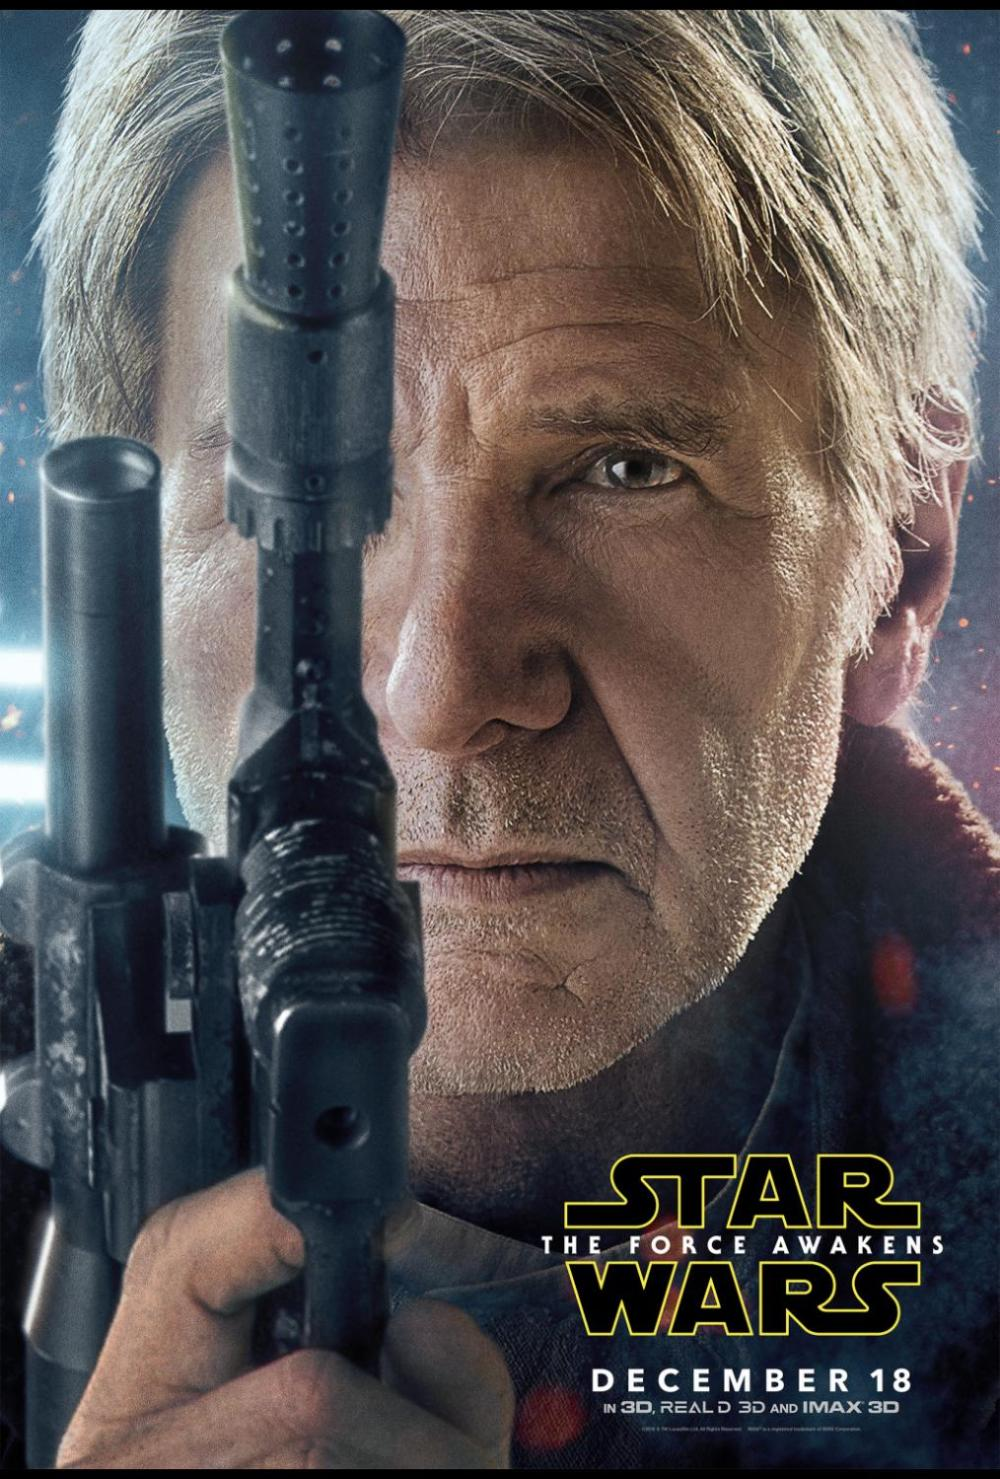 Star Wars: The Force Awakens movie review - han solo poster